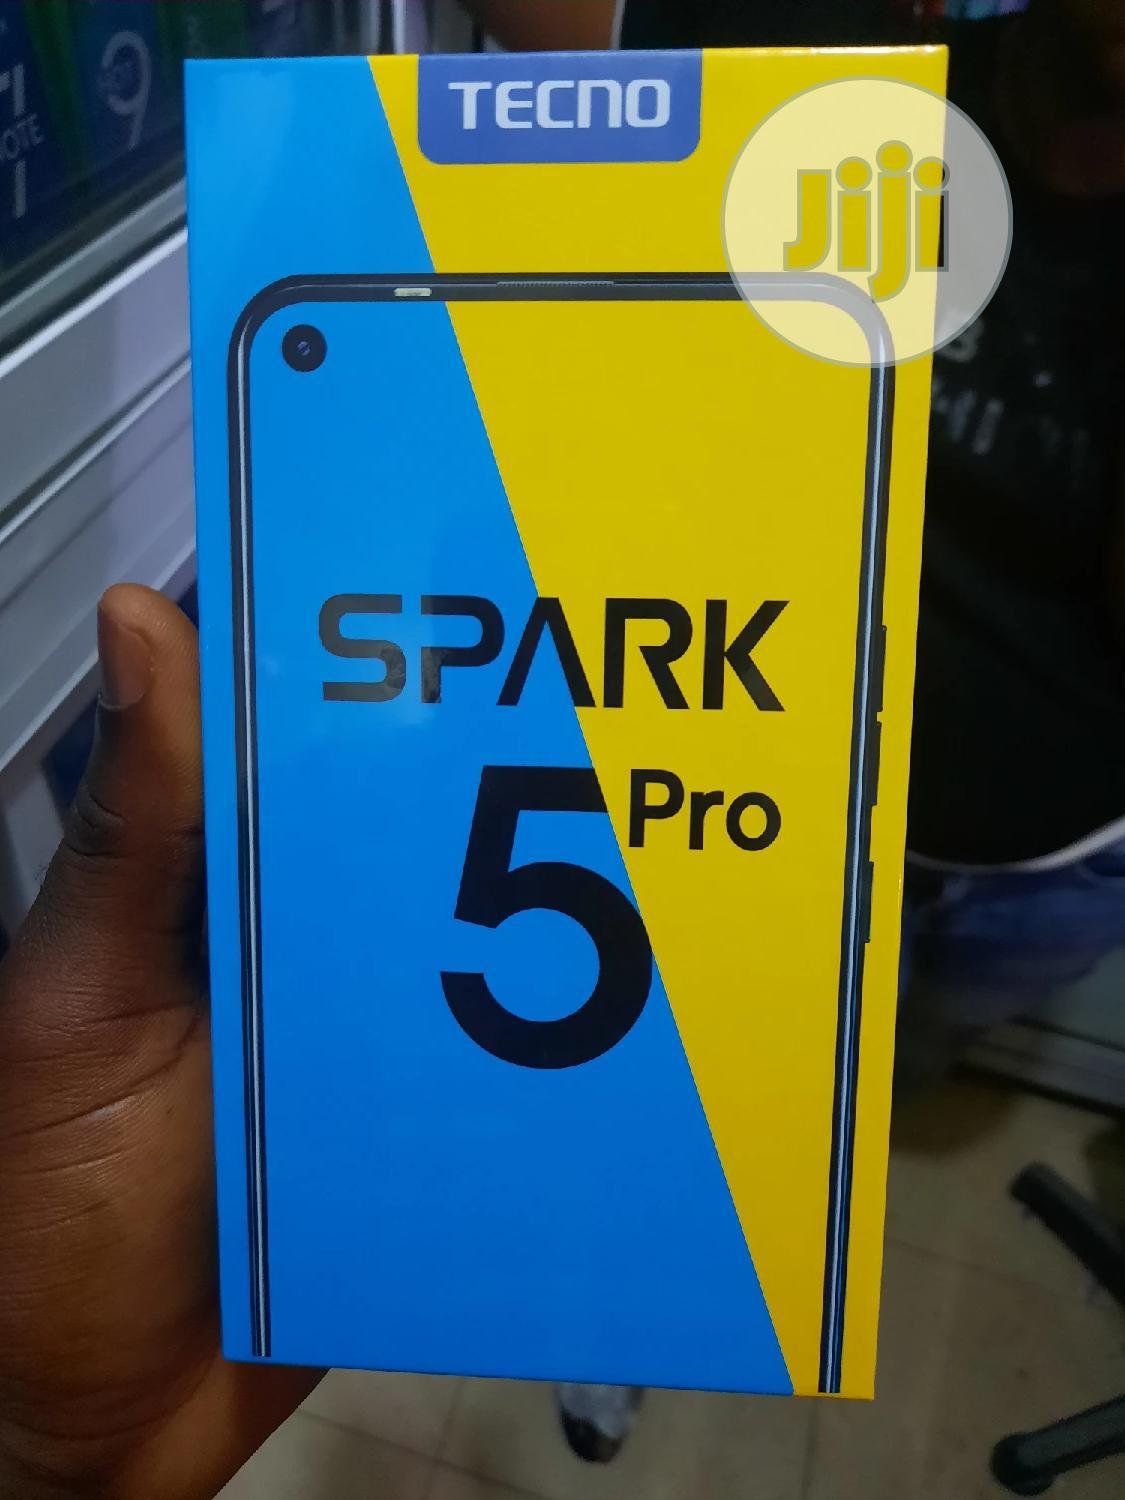 New Tecno Spark 5 Pro 64 GB | Mobile Phones for sale in Ikeja, Lagos State, Nigeria